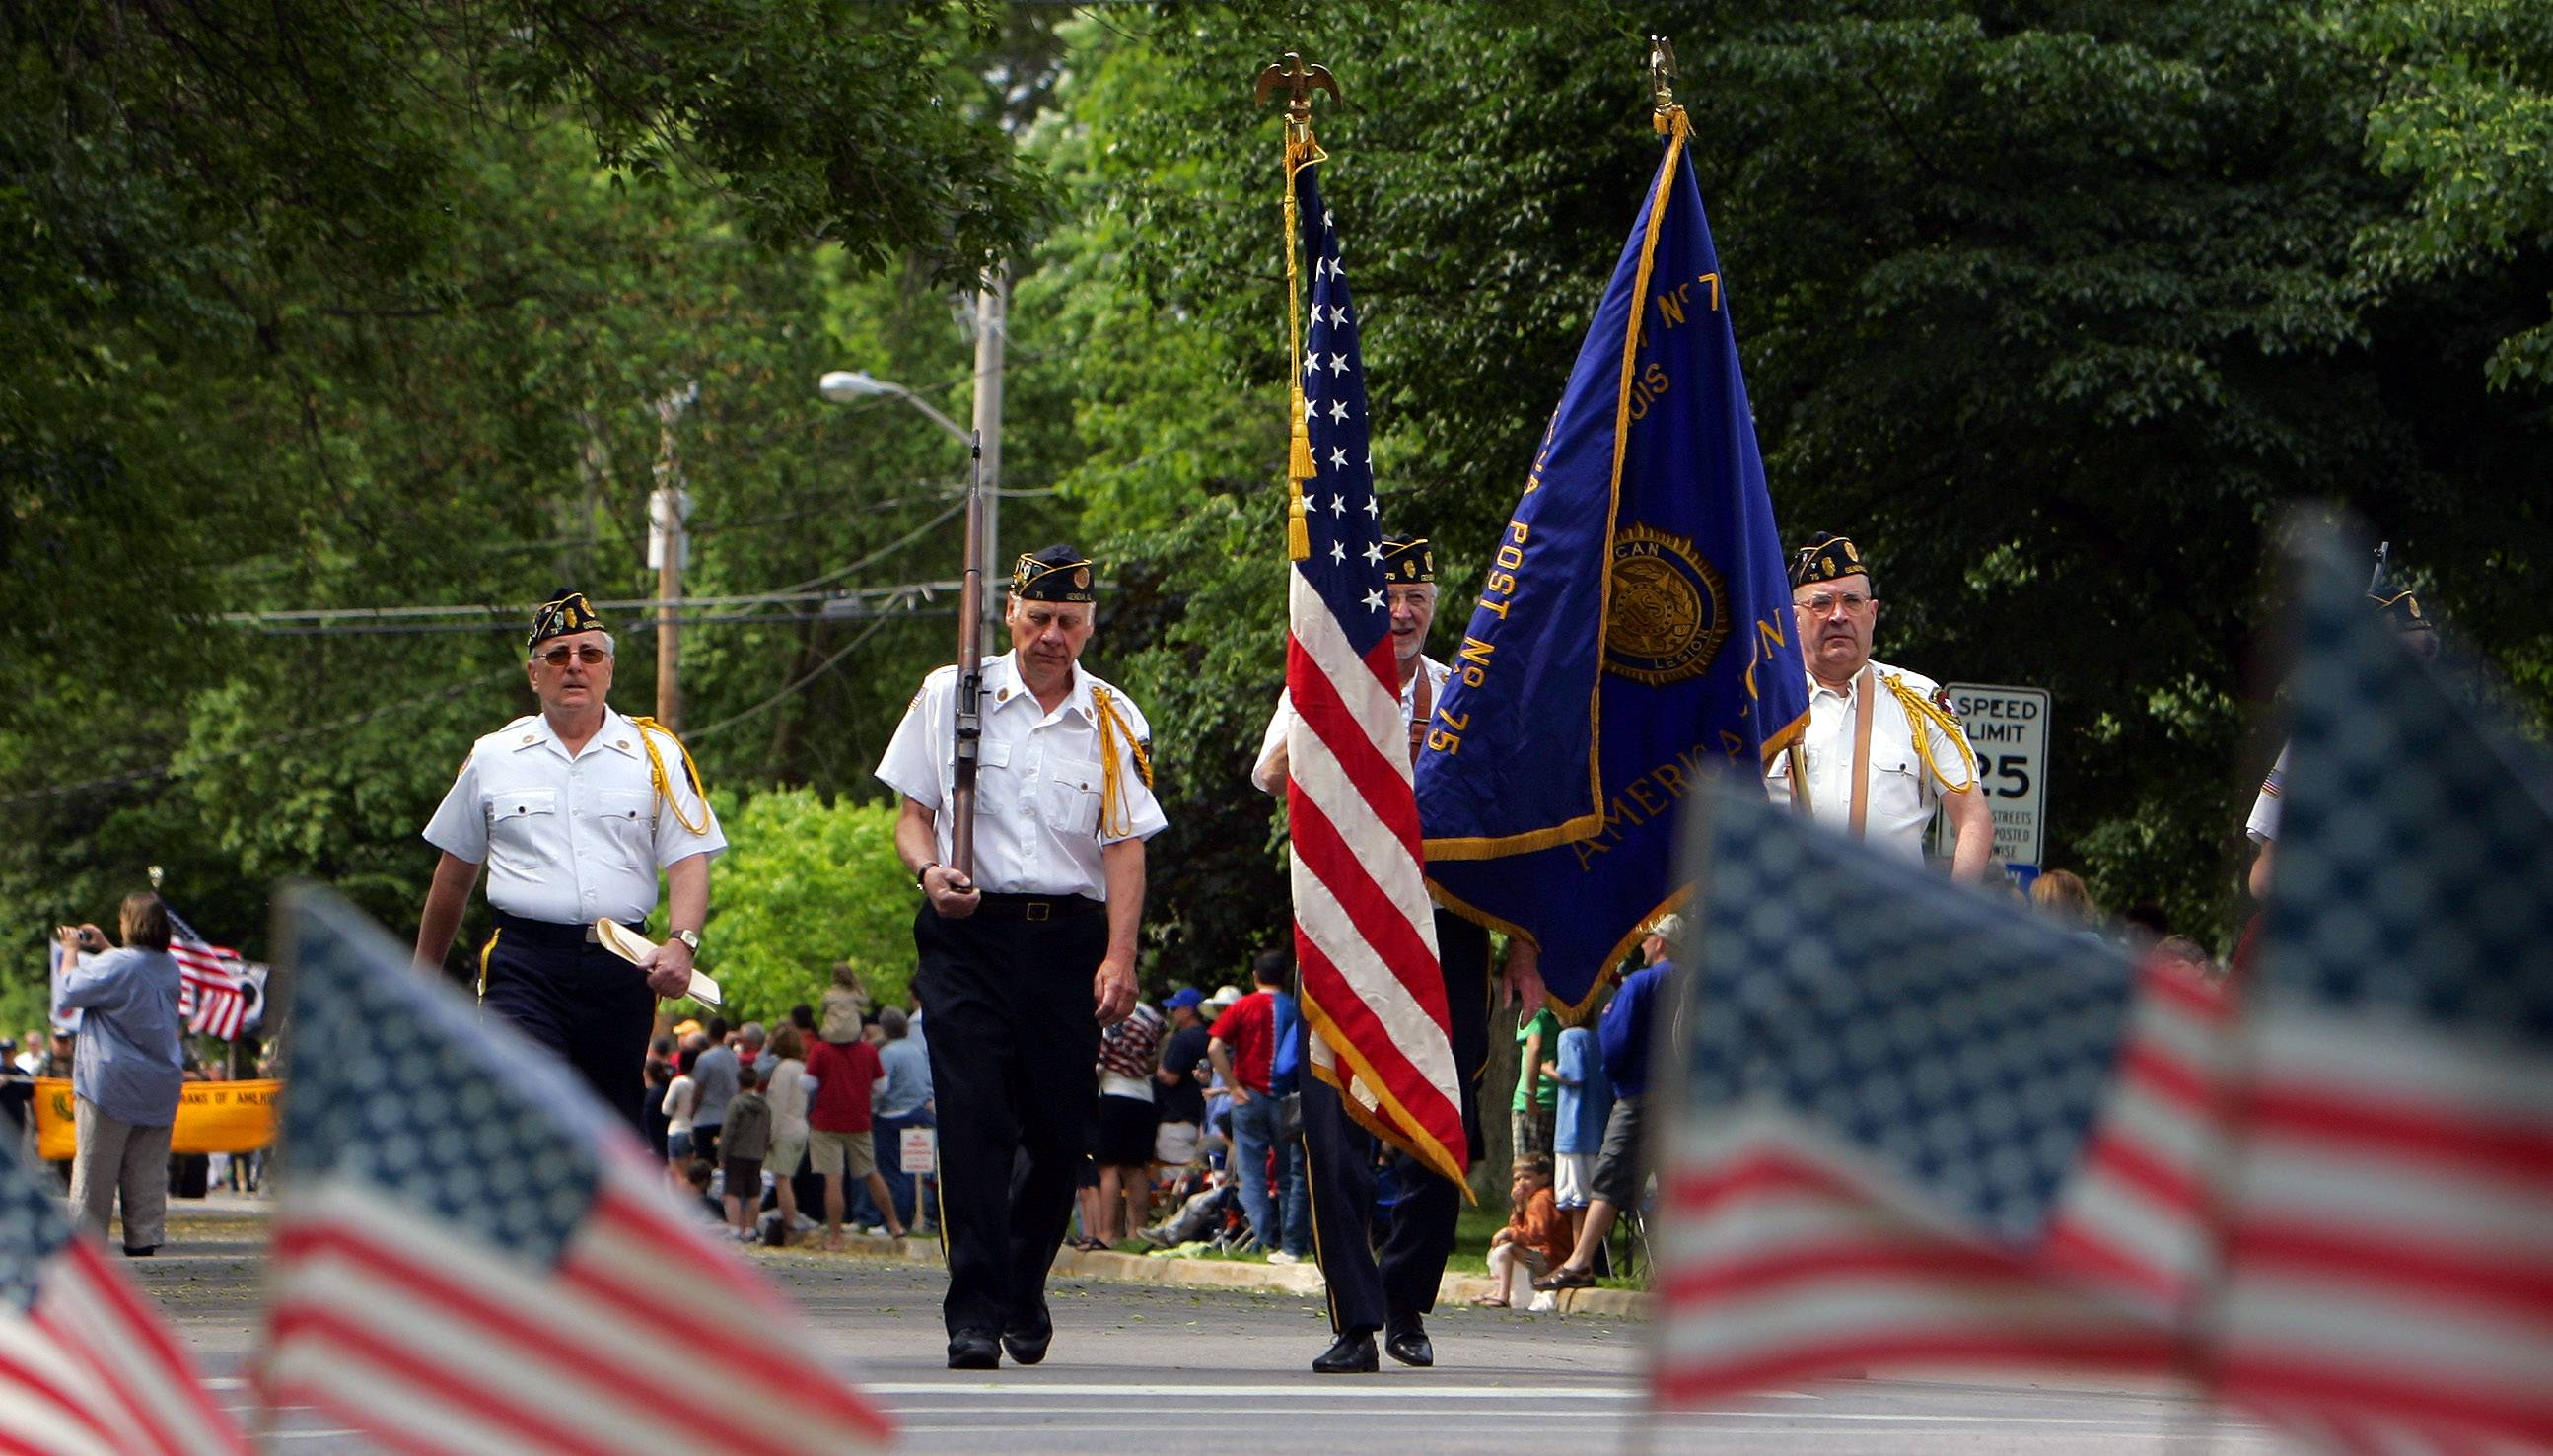 Members of American Legion Post 75 walk the parade route during a previous Geneva Memorial Day parade and gathering at the West Cemetery.